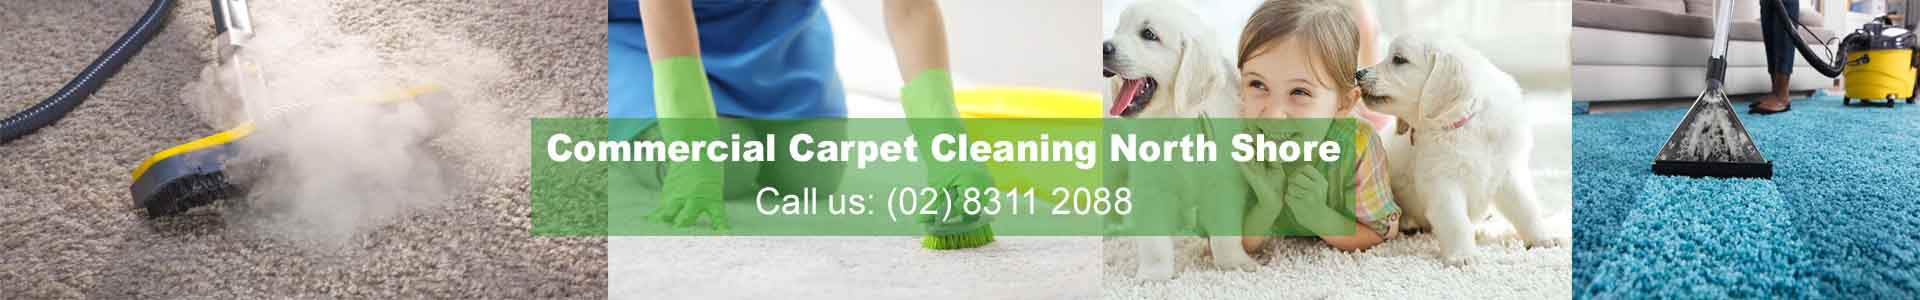 Commercial Carpet Cleaning North Shore